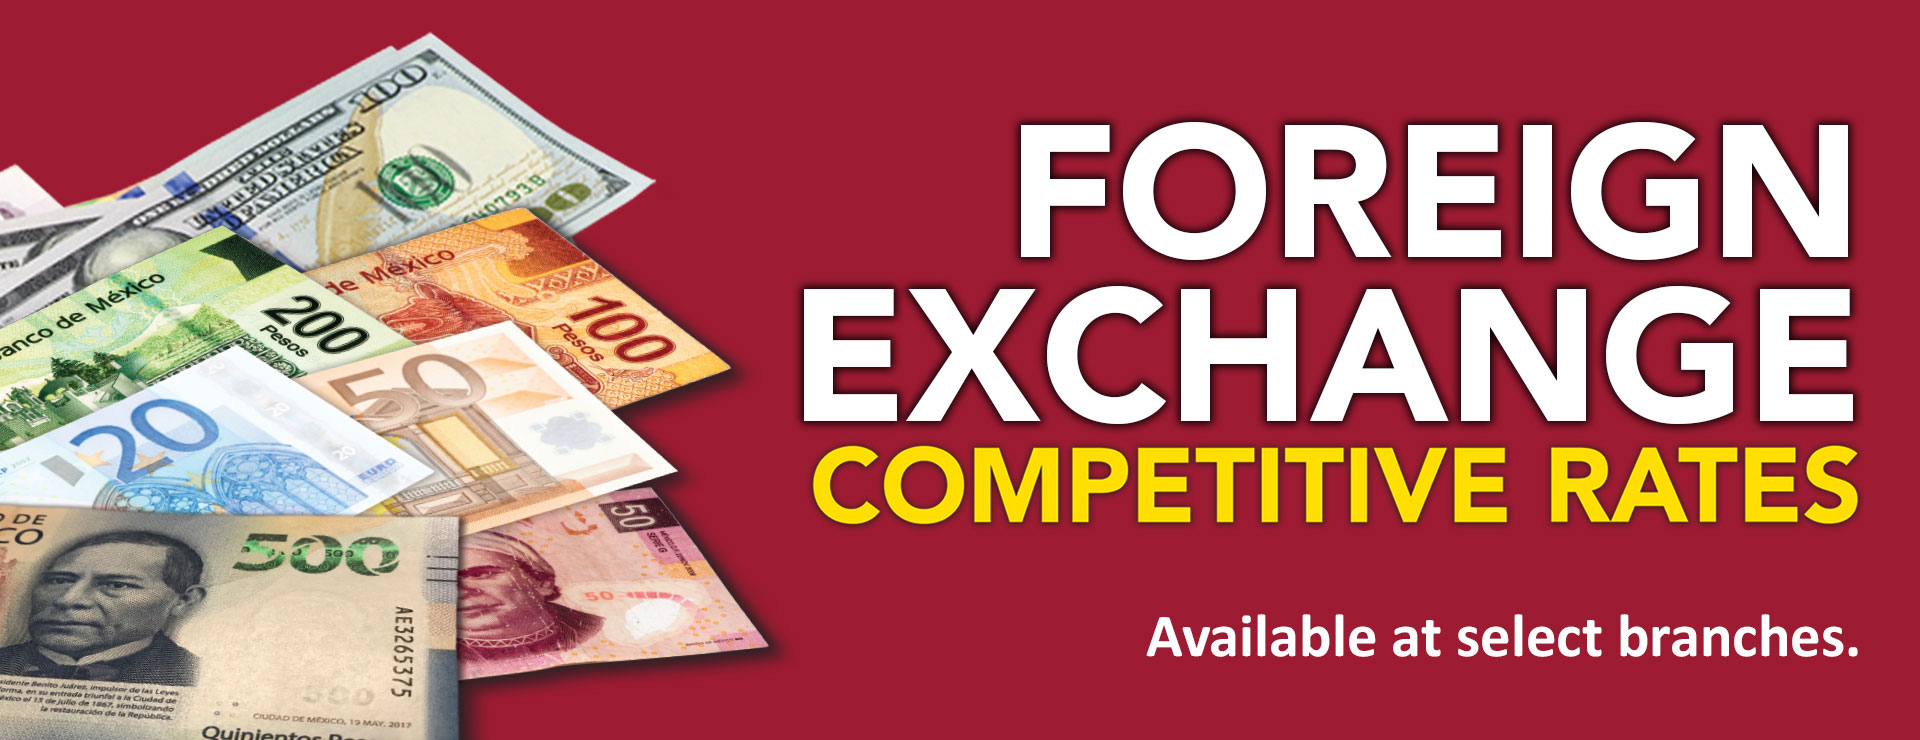 IBC Bank Foreign Exchange